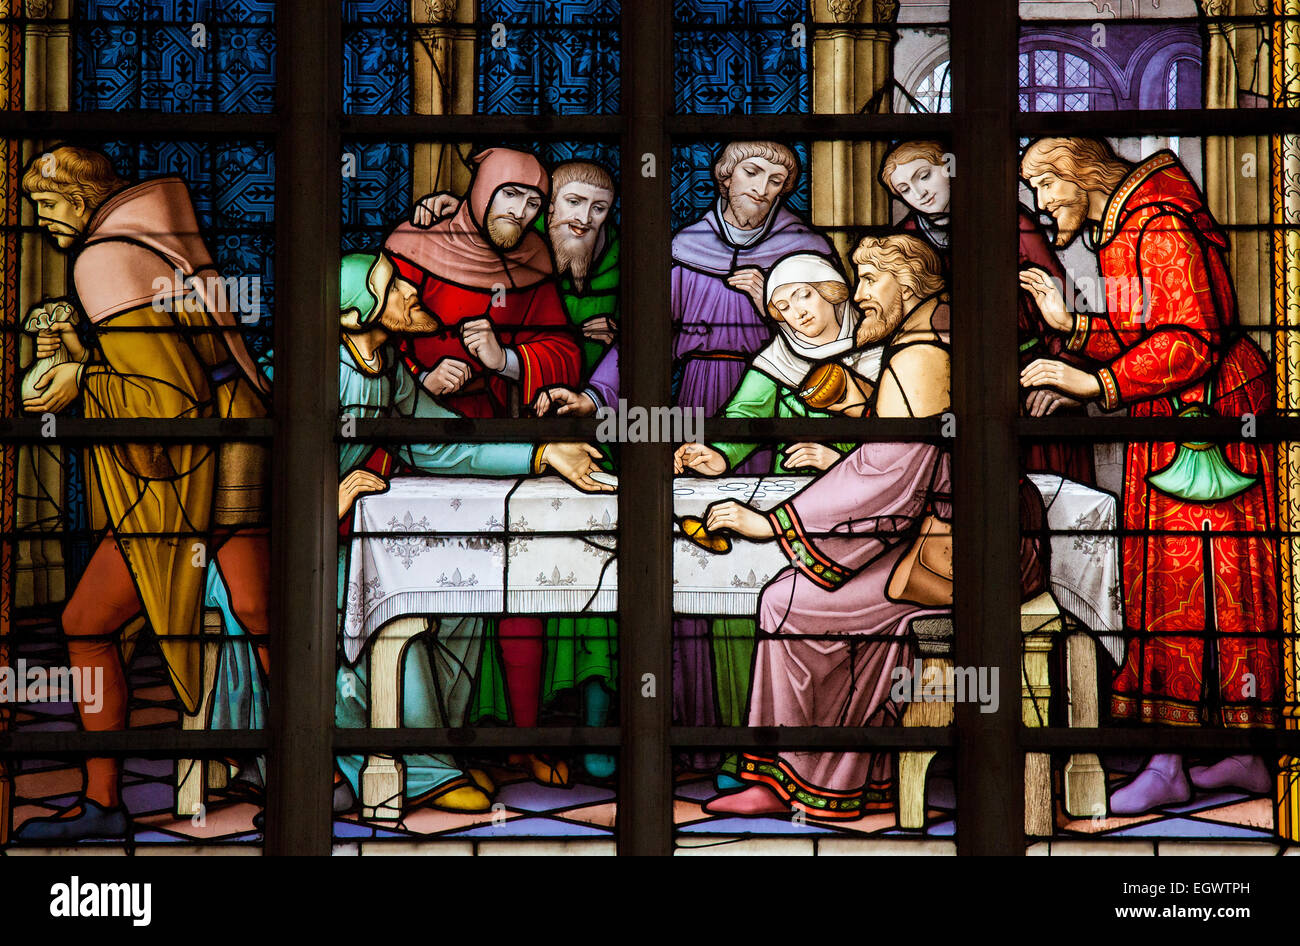 Stained Glass window depicting the antisemitic legend of Jews stealing sacramental bread, in the Cathedral of Brussels, - Stock Image